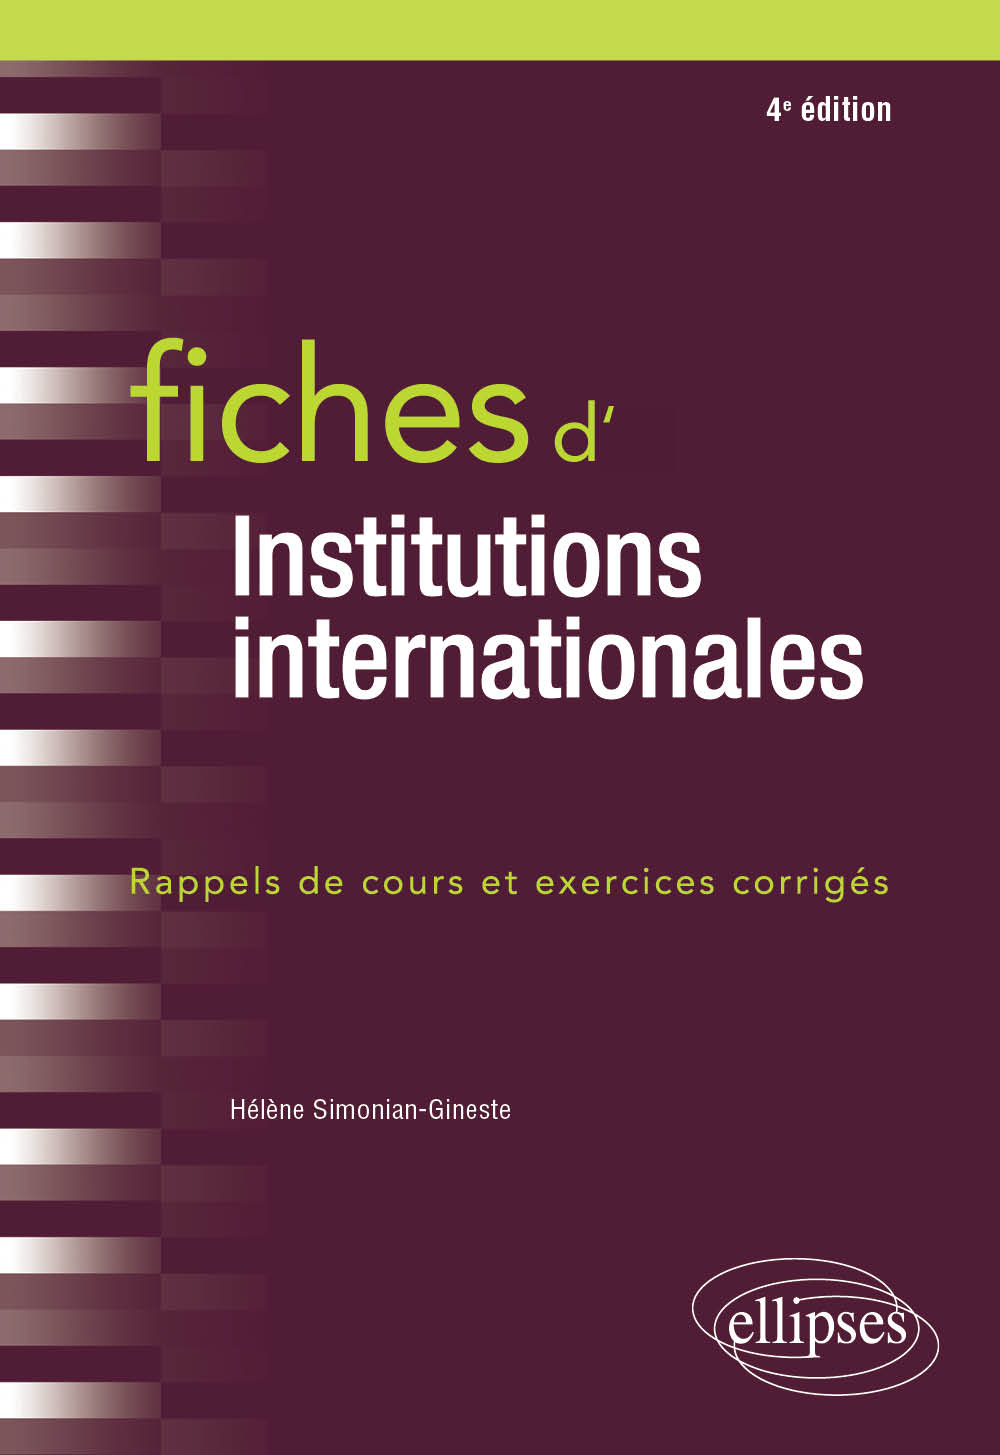 Fiches d'Institutions internationales - 4e édition